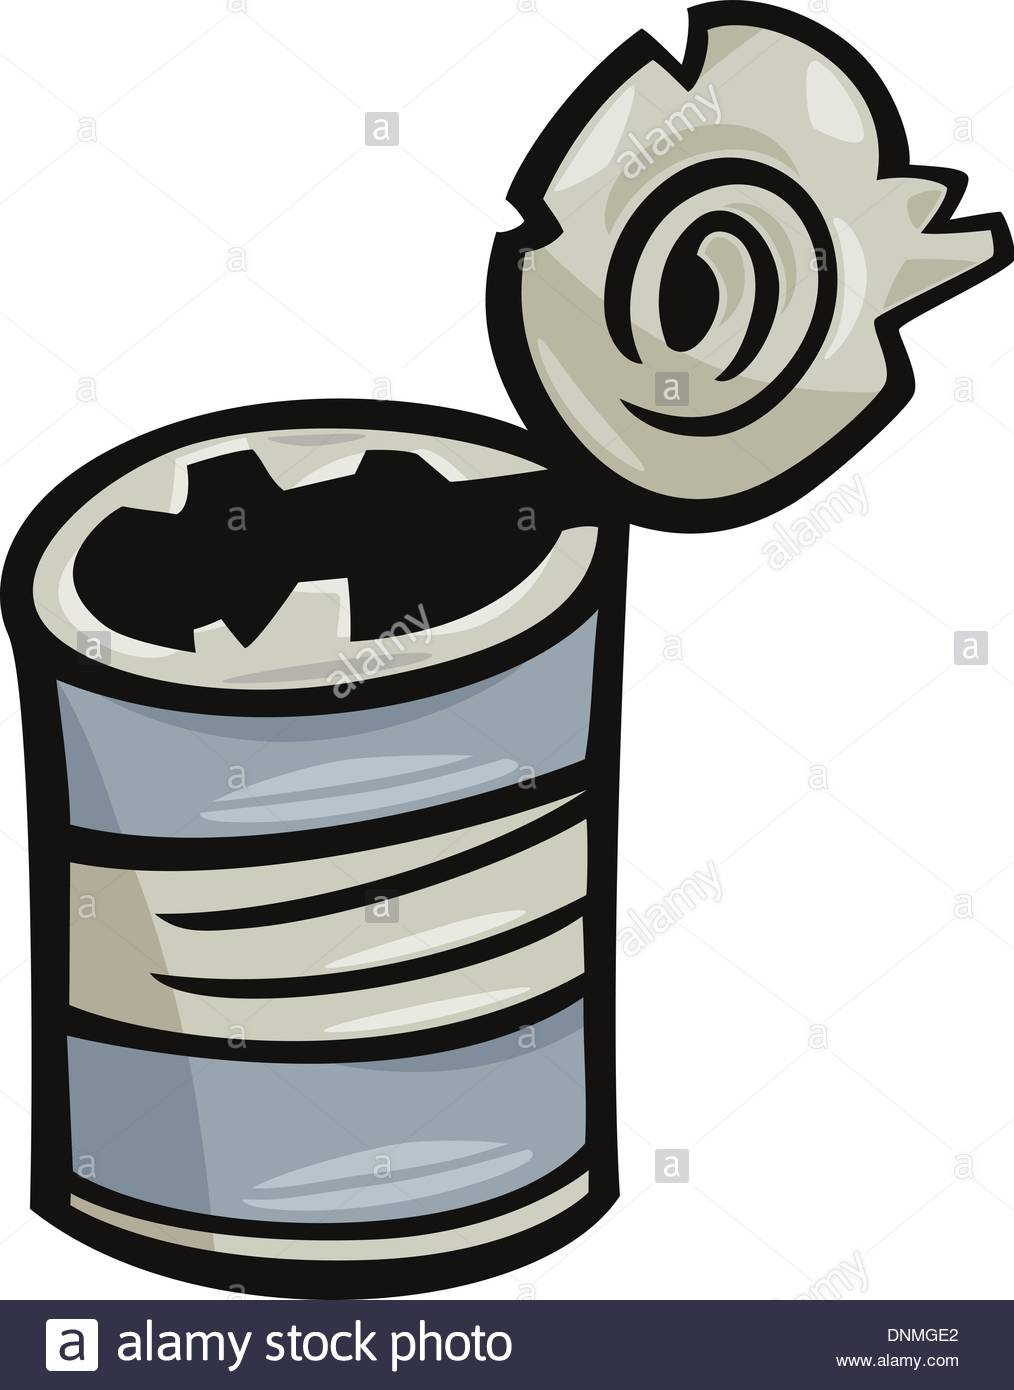 1014x1390 Cartoon Illustration Of Old Empty Can Junk Clip Art Stock Vector